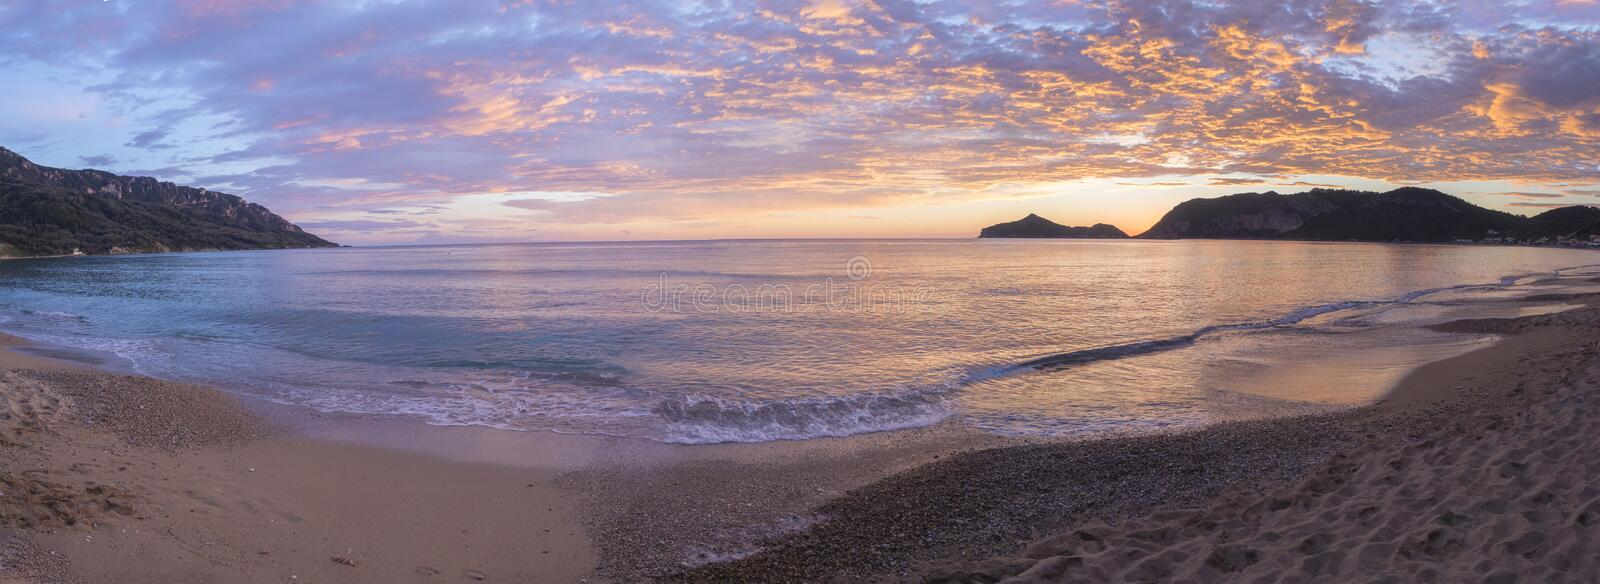 Panoramic view on beautiful pastel pink orange and golden sunset clouds and waves at sea shore Agios Georgios Pagon beach at Corfu stock photo